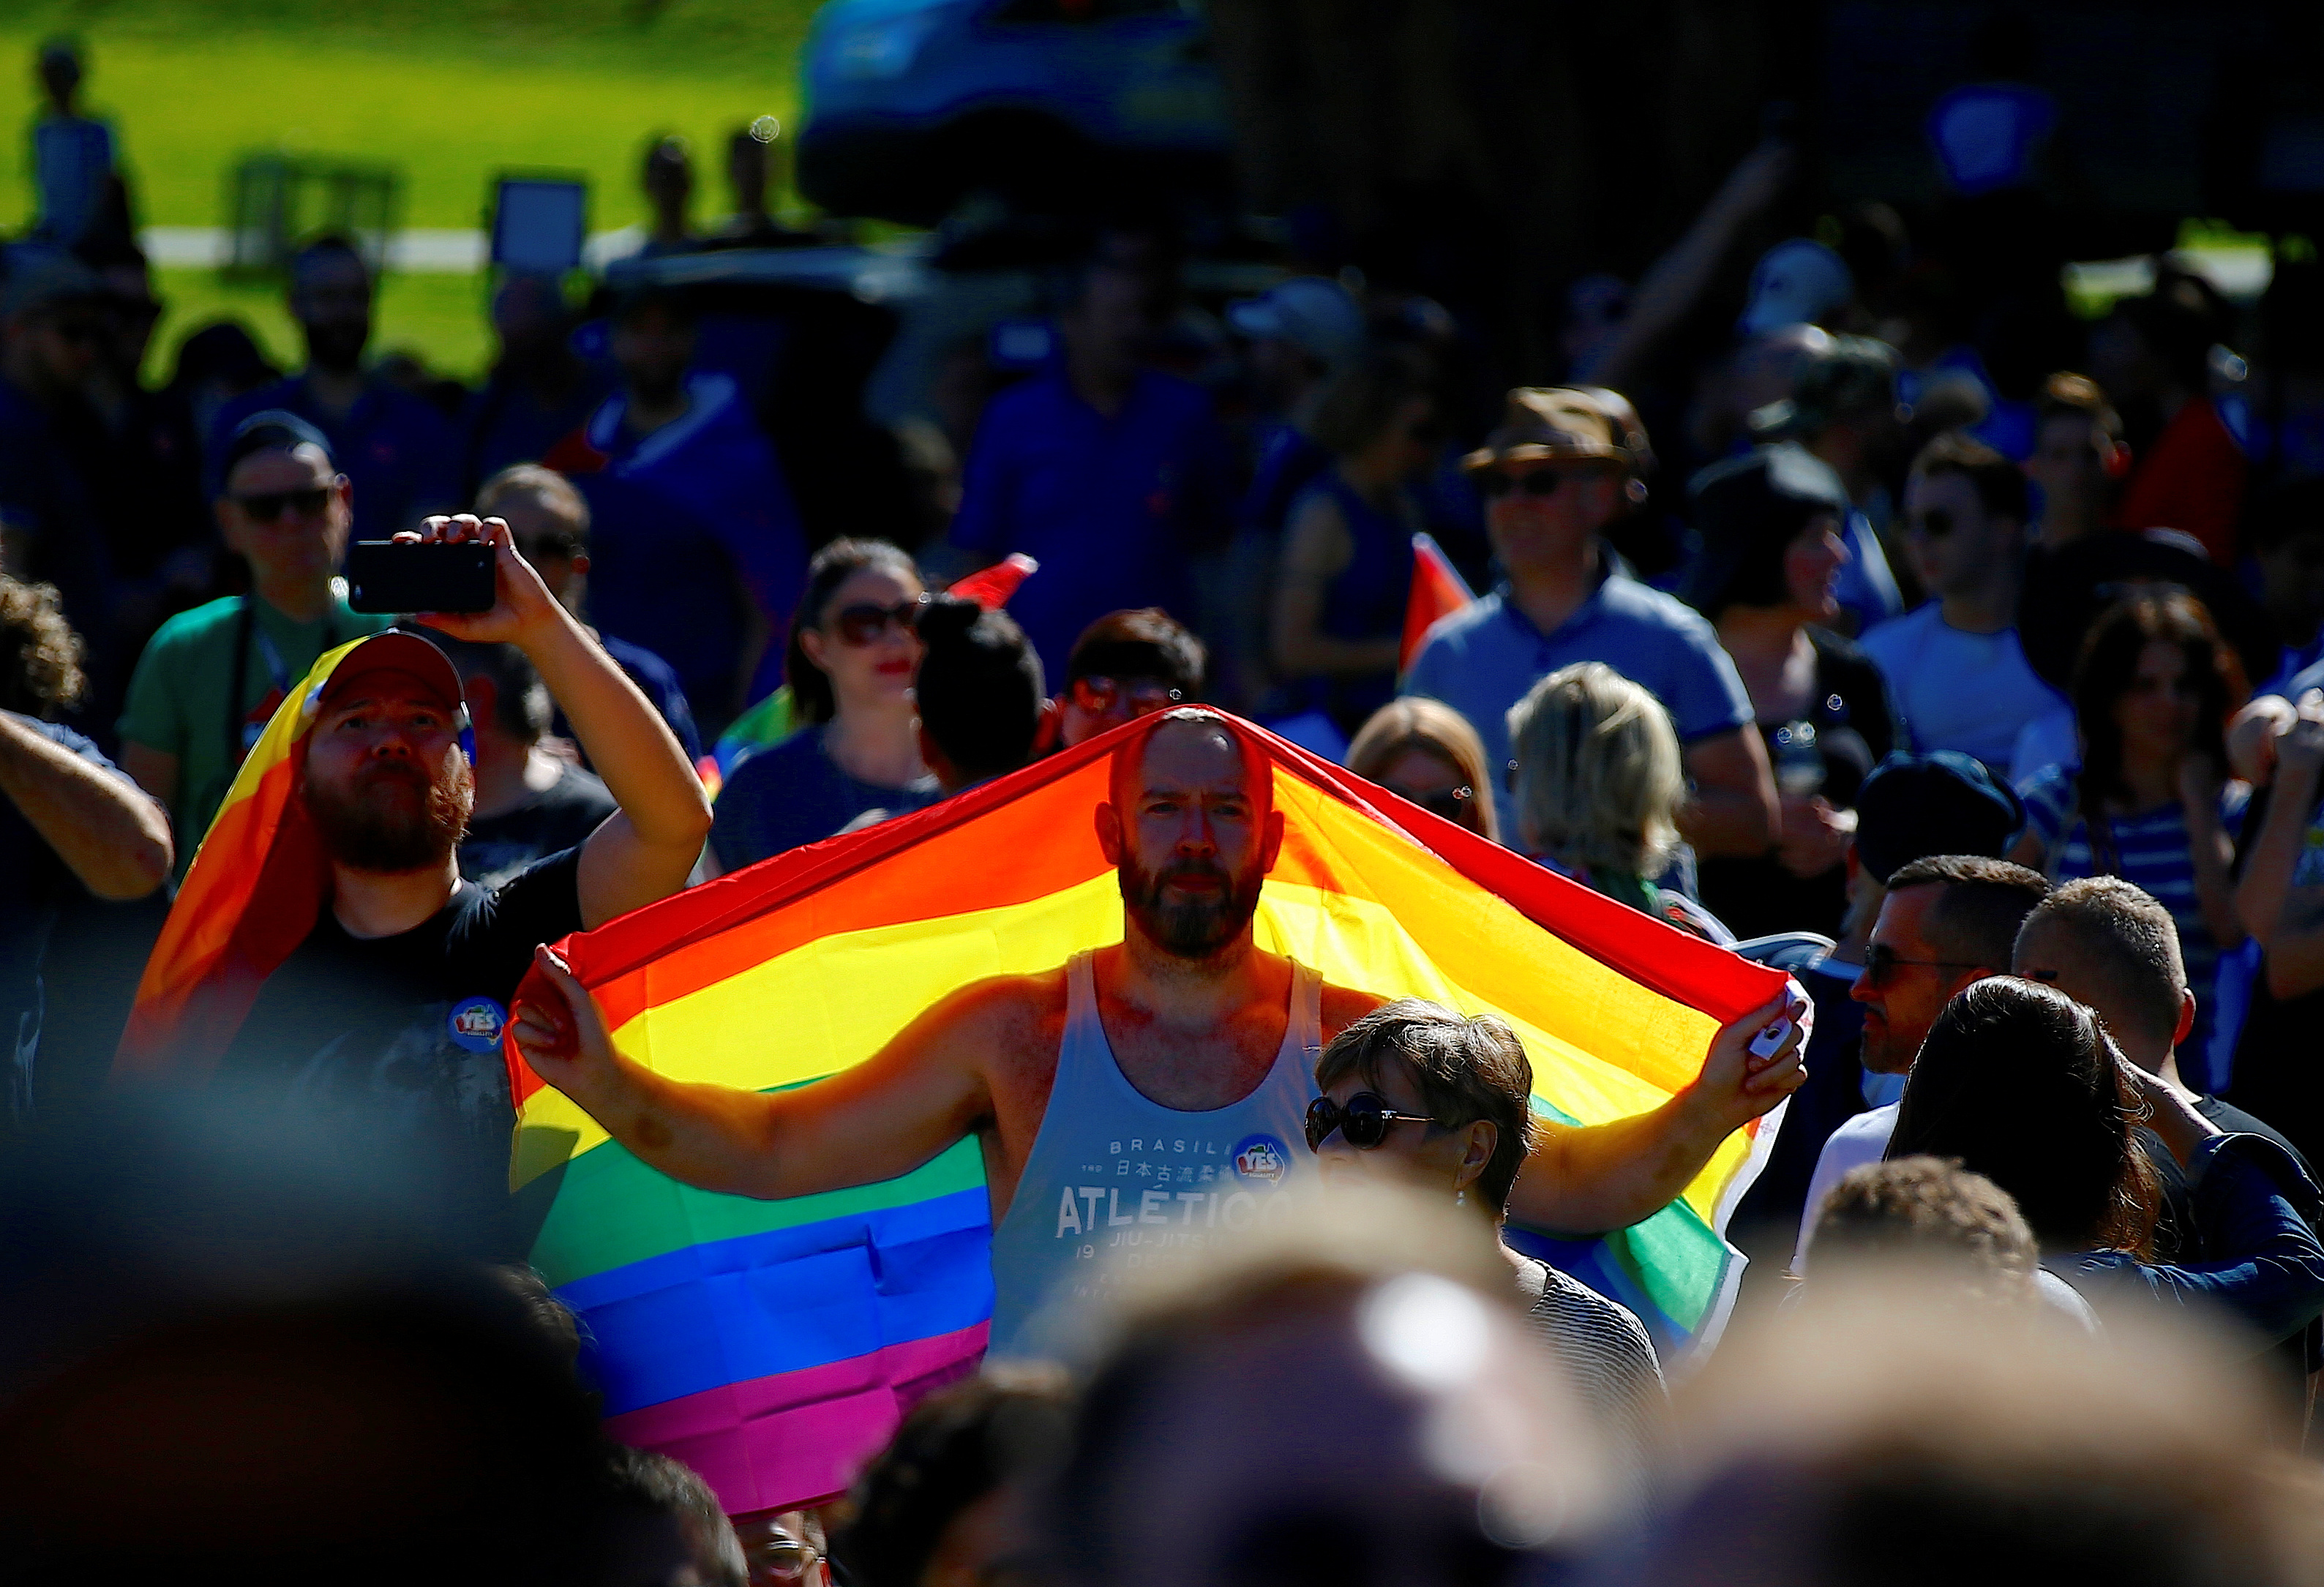 A supporter of the 'Yes' vote holds a colourful flag as he celebrates after it was announced the majority of Australians support same-sex marriage in a national survey, paving the way for legislation to make the country the 26th nation to formalise the unions by the end of the year, at a rally in central Sydney, Australia, November 15, 2017.  REUTERS/David Gray - RC1B4D37EB00